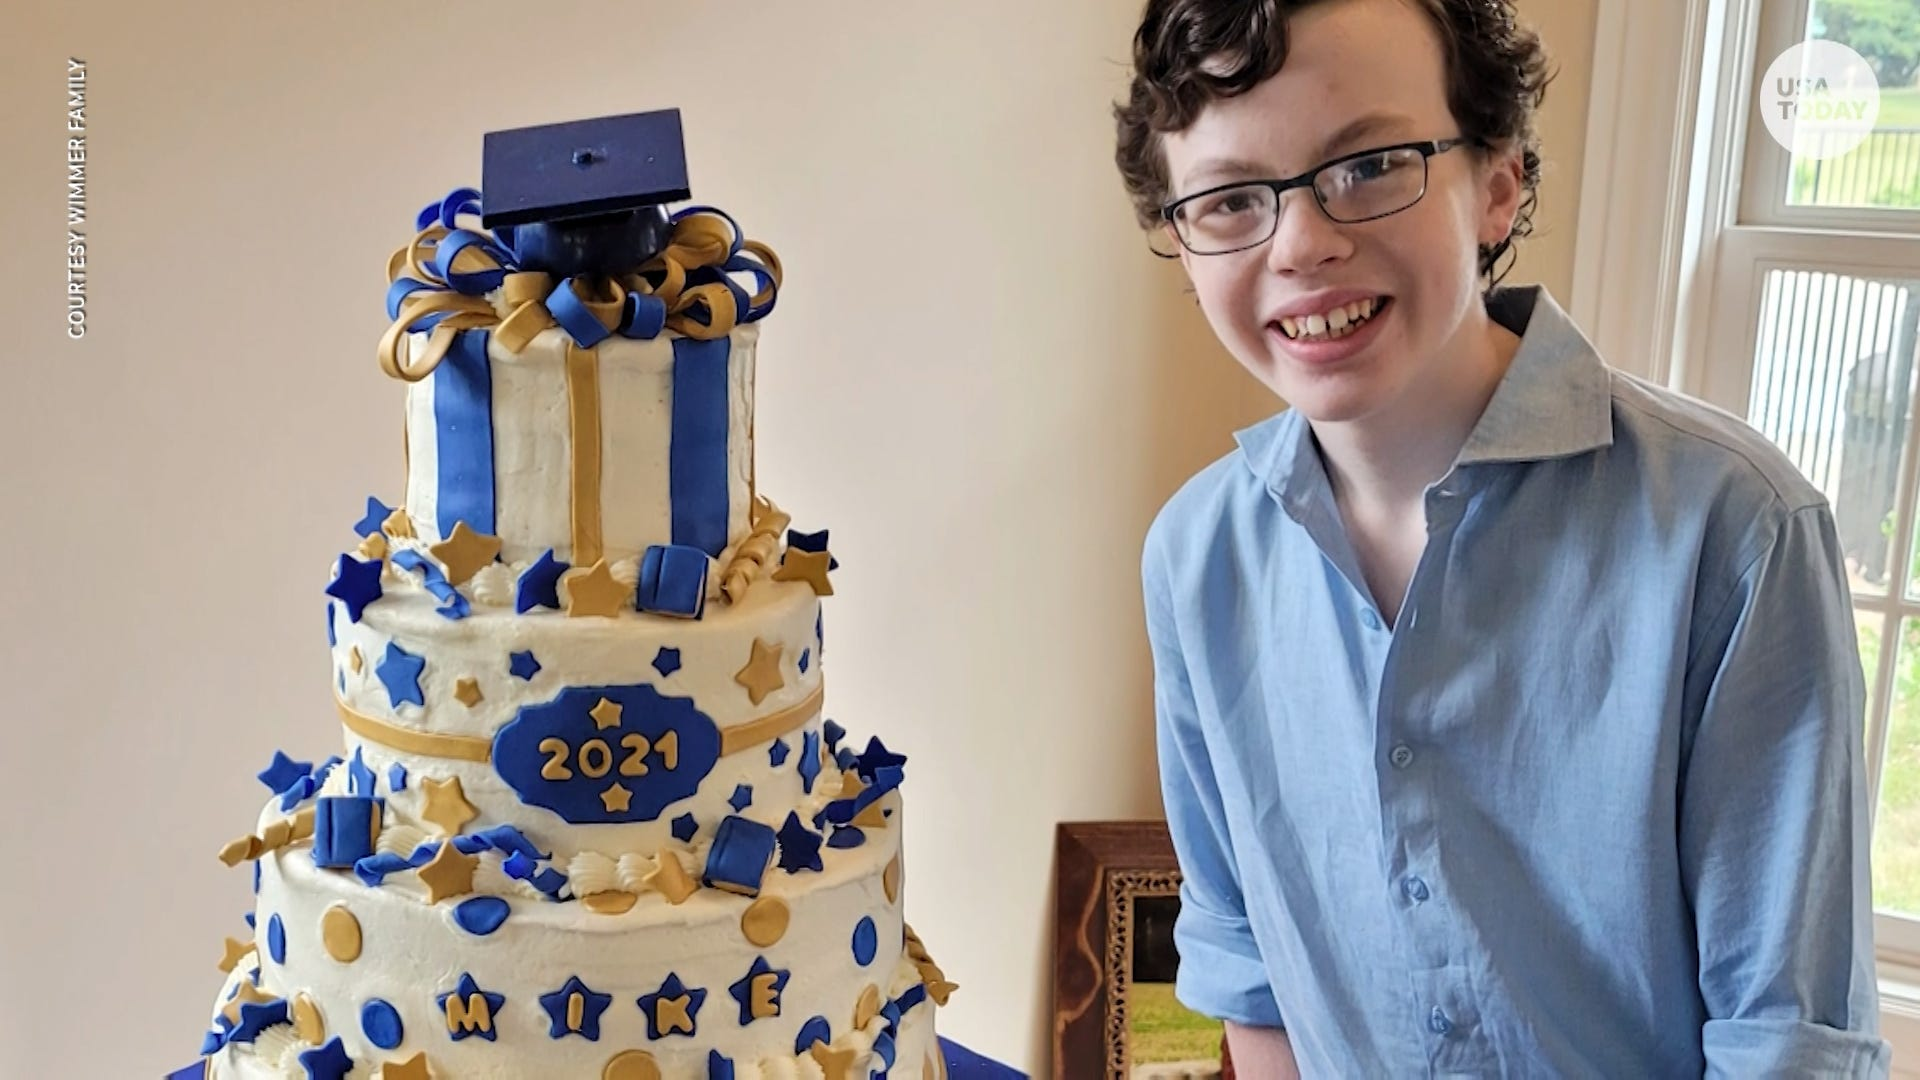 12-year-old graduates from both high school and college in the same year